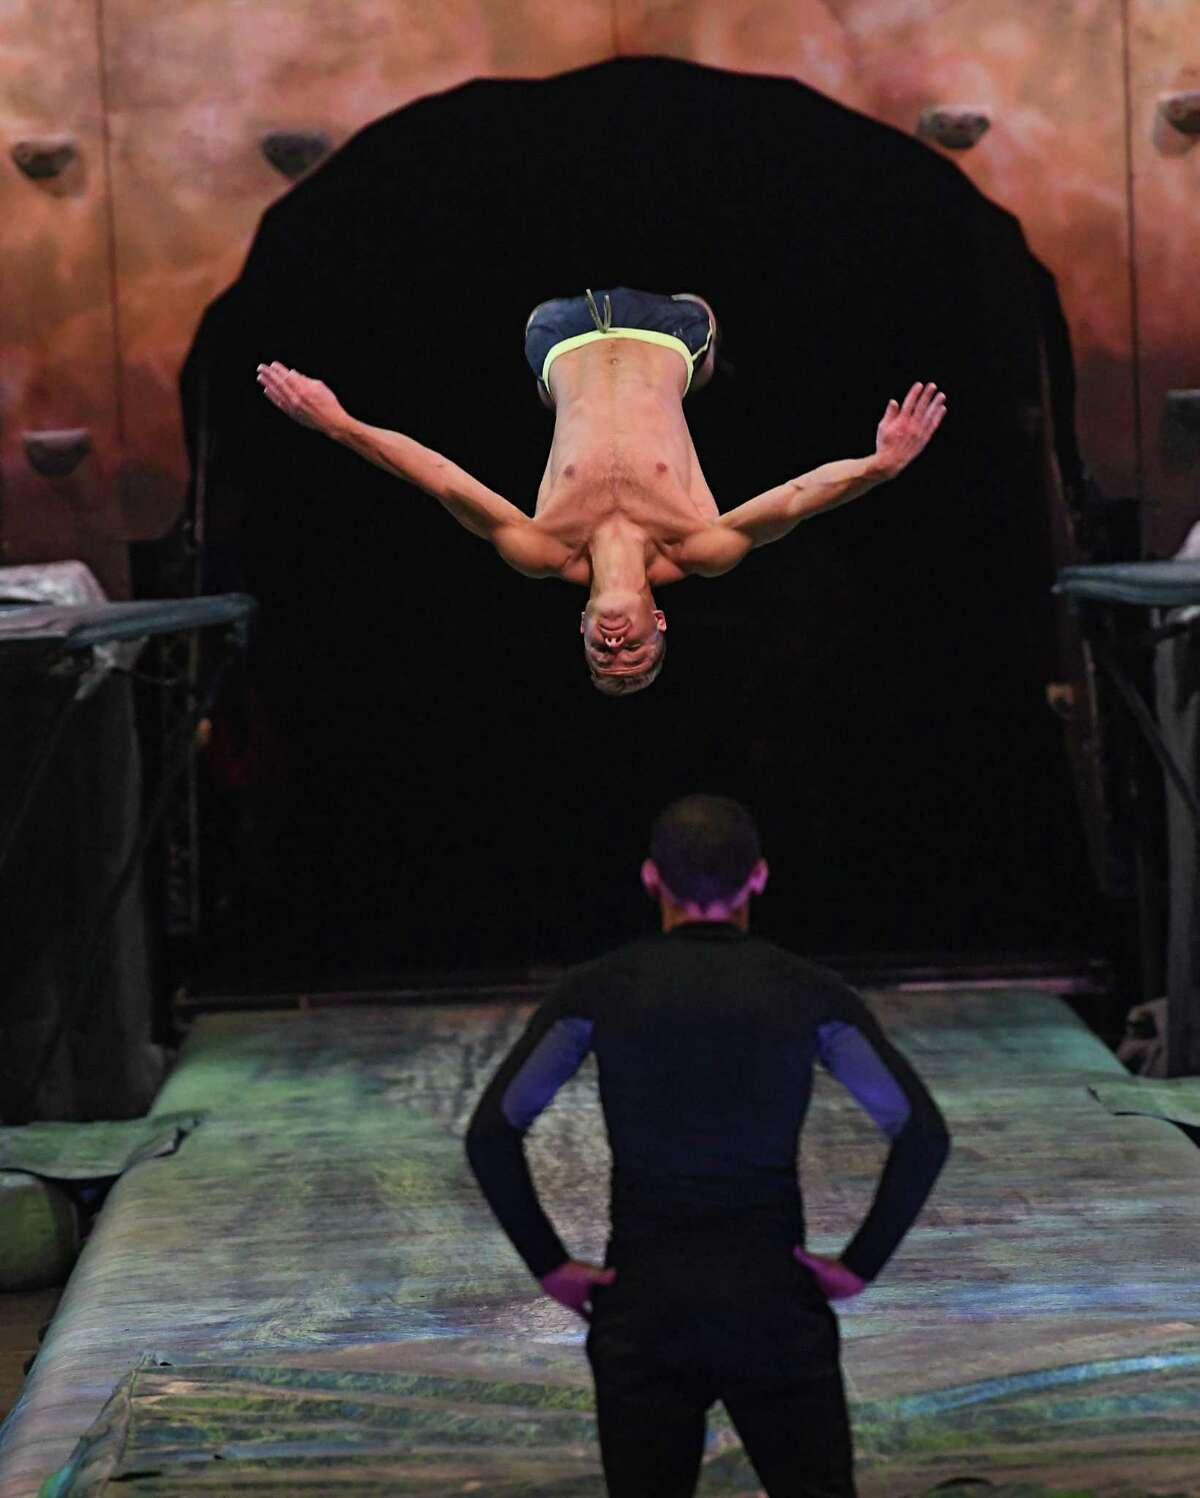 Cirque du Soleil artists prepare to perform OVO at the Times Union Center on Wednesday, Jan. 29, 2020 in Albany, N.Y. (Lori Van Buren/Times Union)